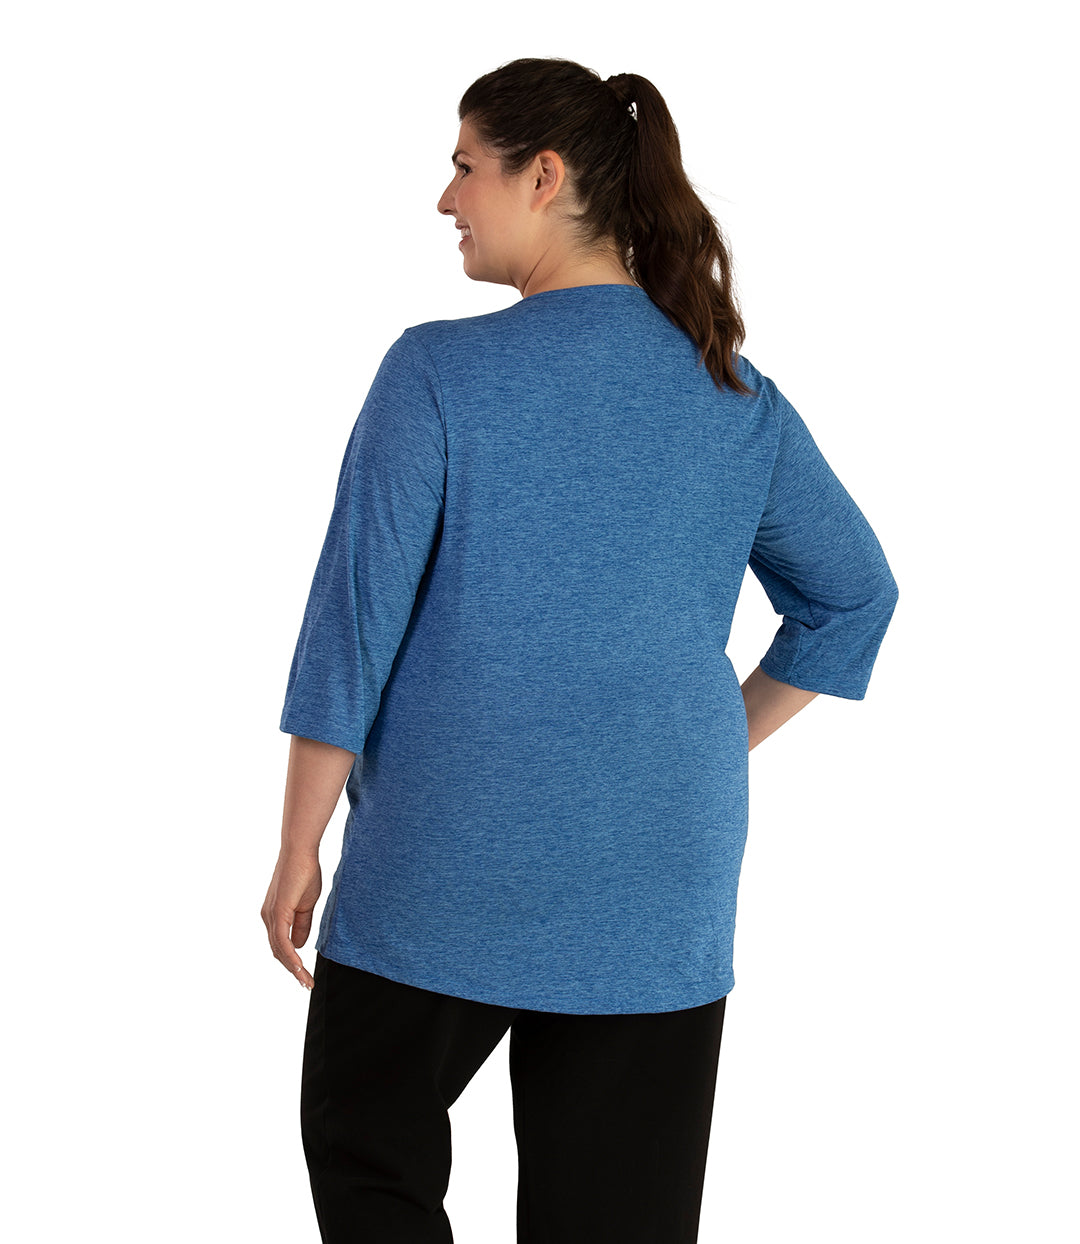 QuikLite Scoop Neck 3/4 Sleeve Top-Tops 3/4 Sleeve-Springtex-XL-Heather Blue-JunoActive